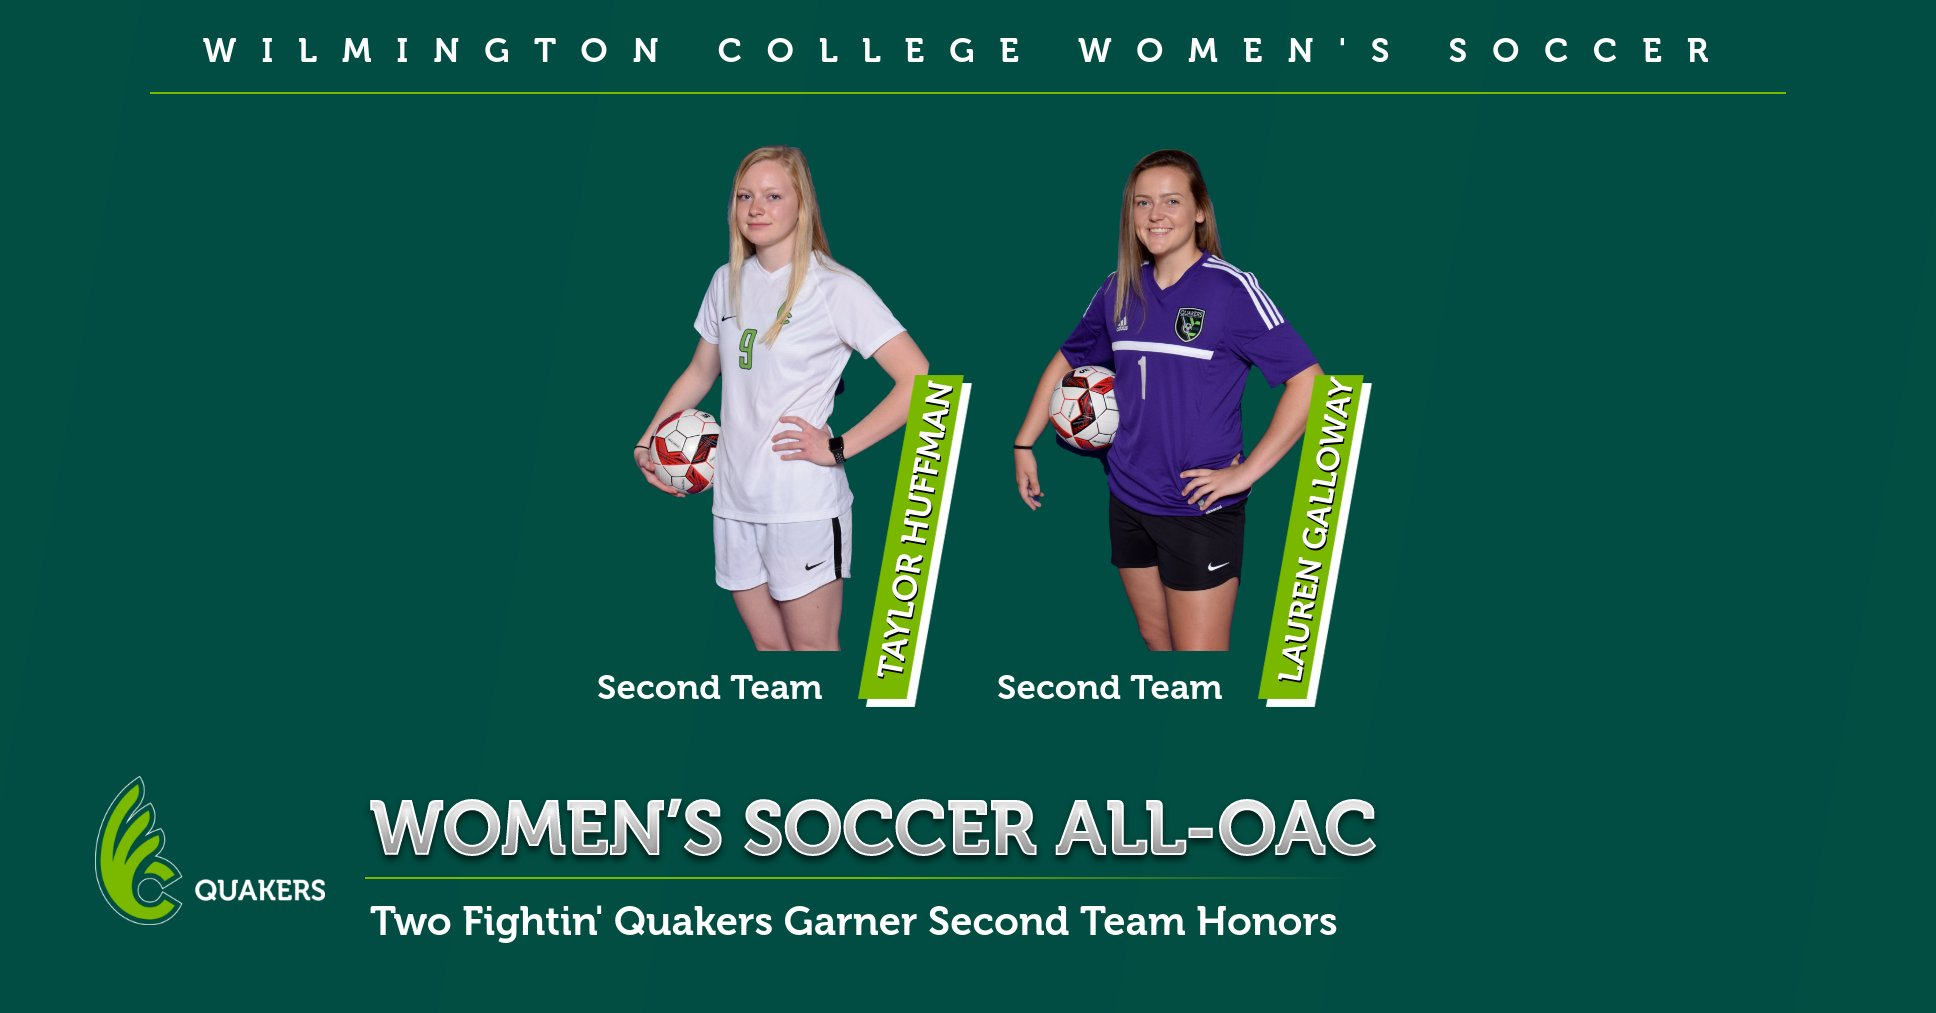 Huffman and Galloway Earn All-OAC Recognition